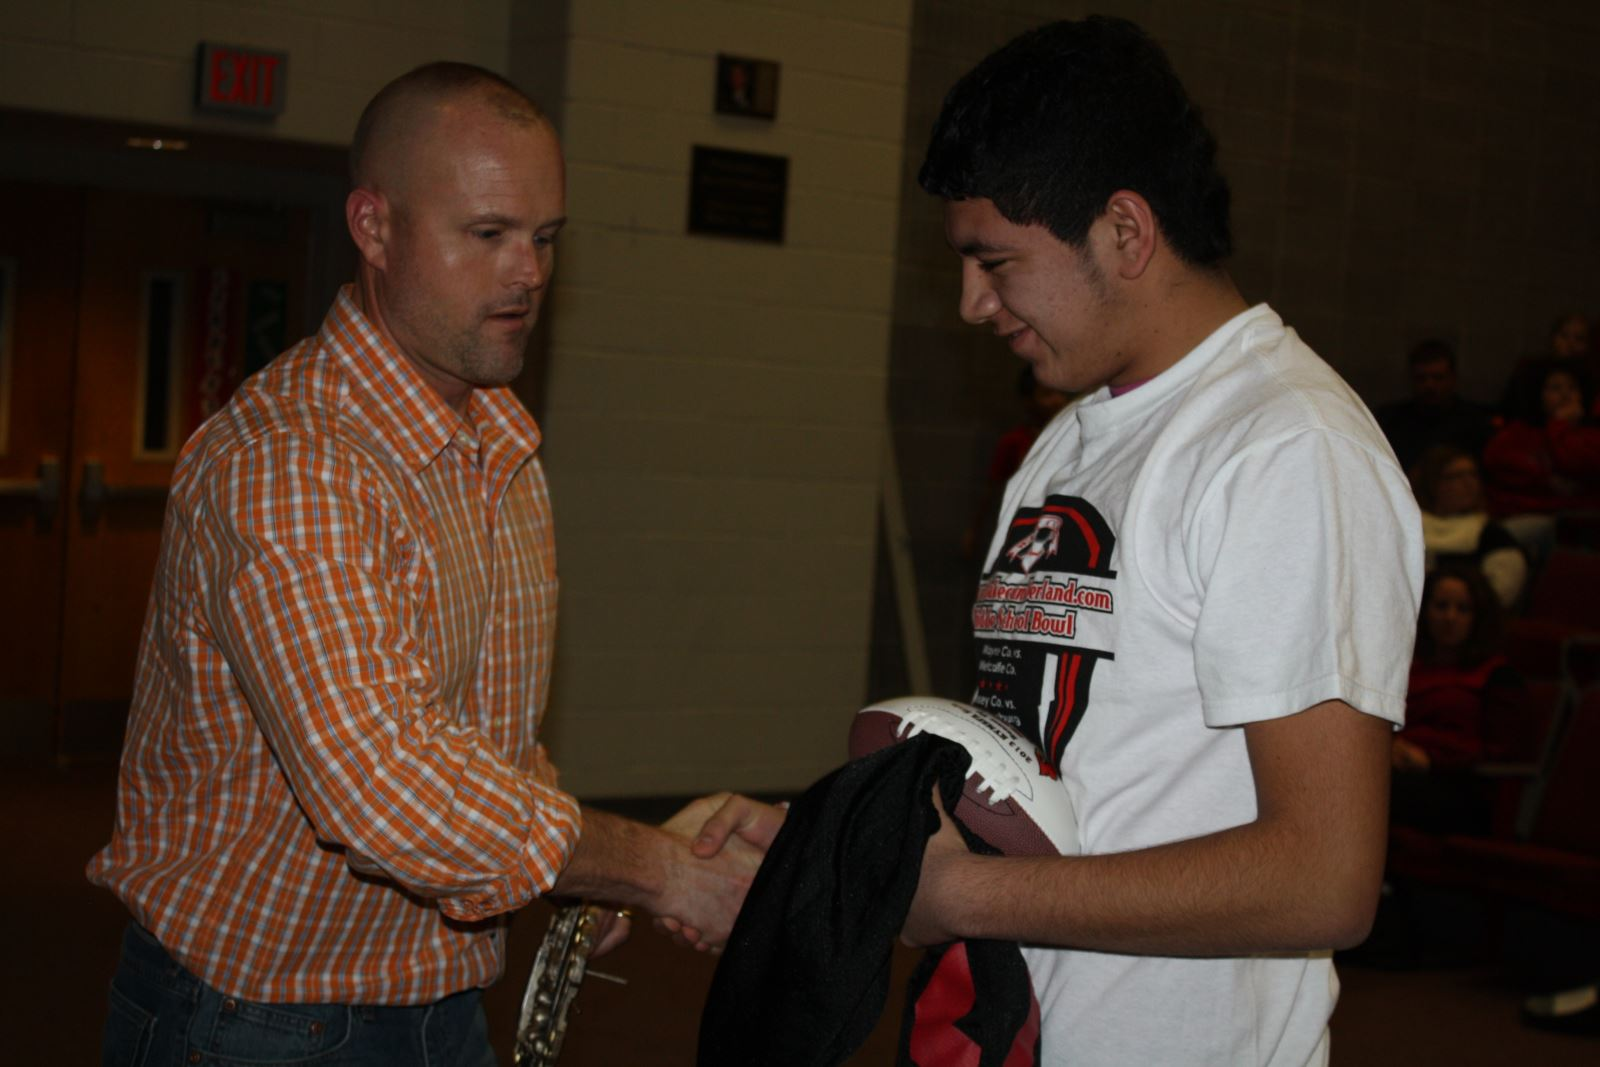 Luis calderon receving his awards from assistant coach sheridan wright